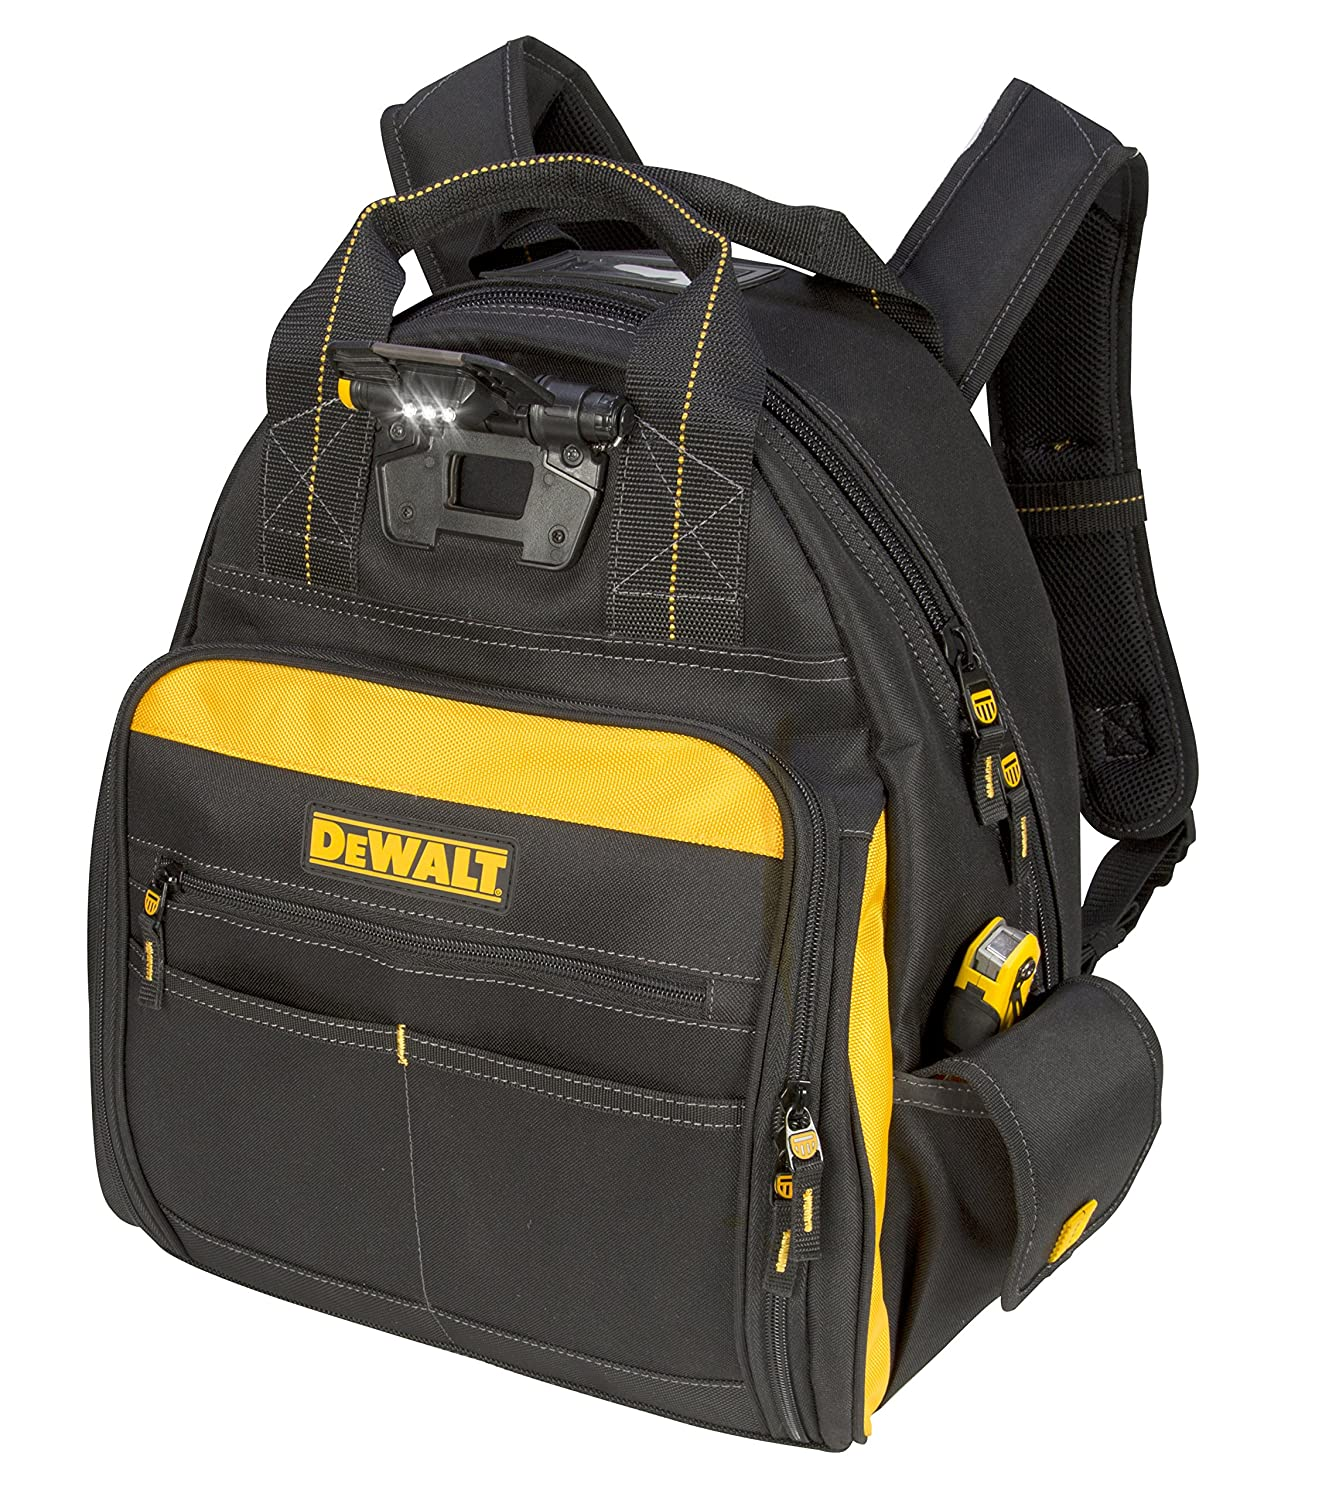 10 Best Tool Backpack Review & Buying Guide 2018